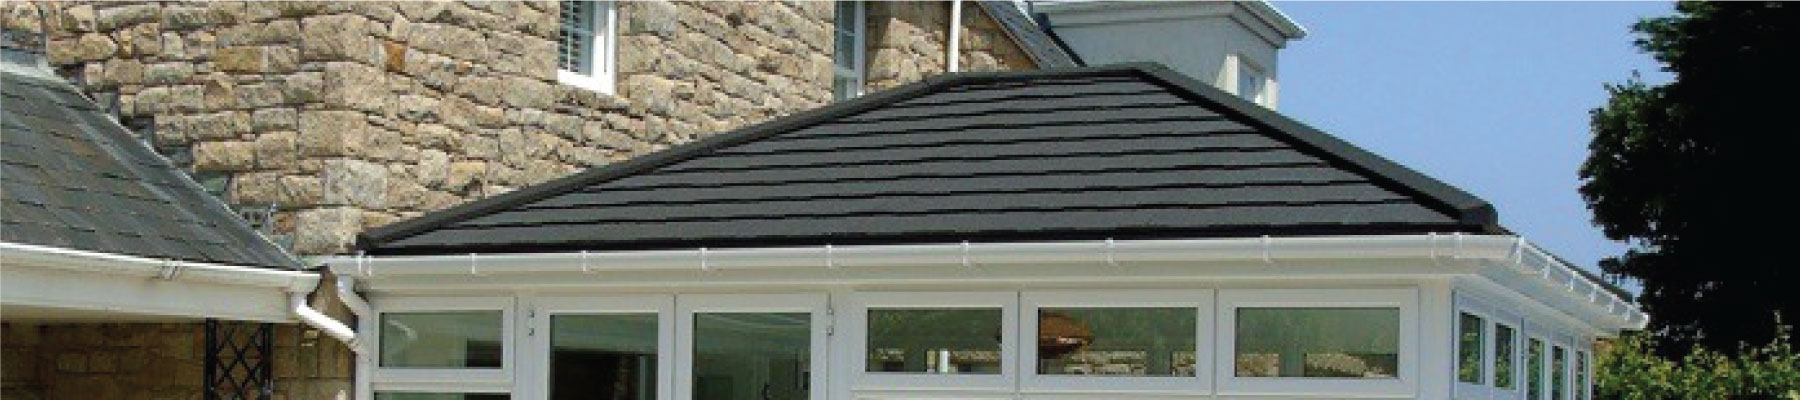 Conservatory Roof Conversions - Group Tegula